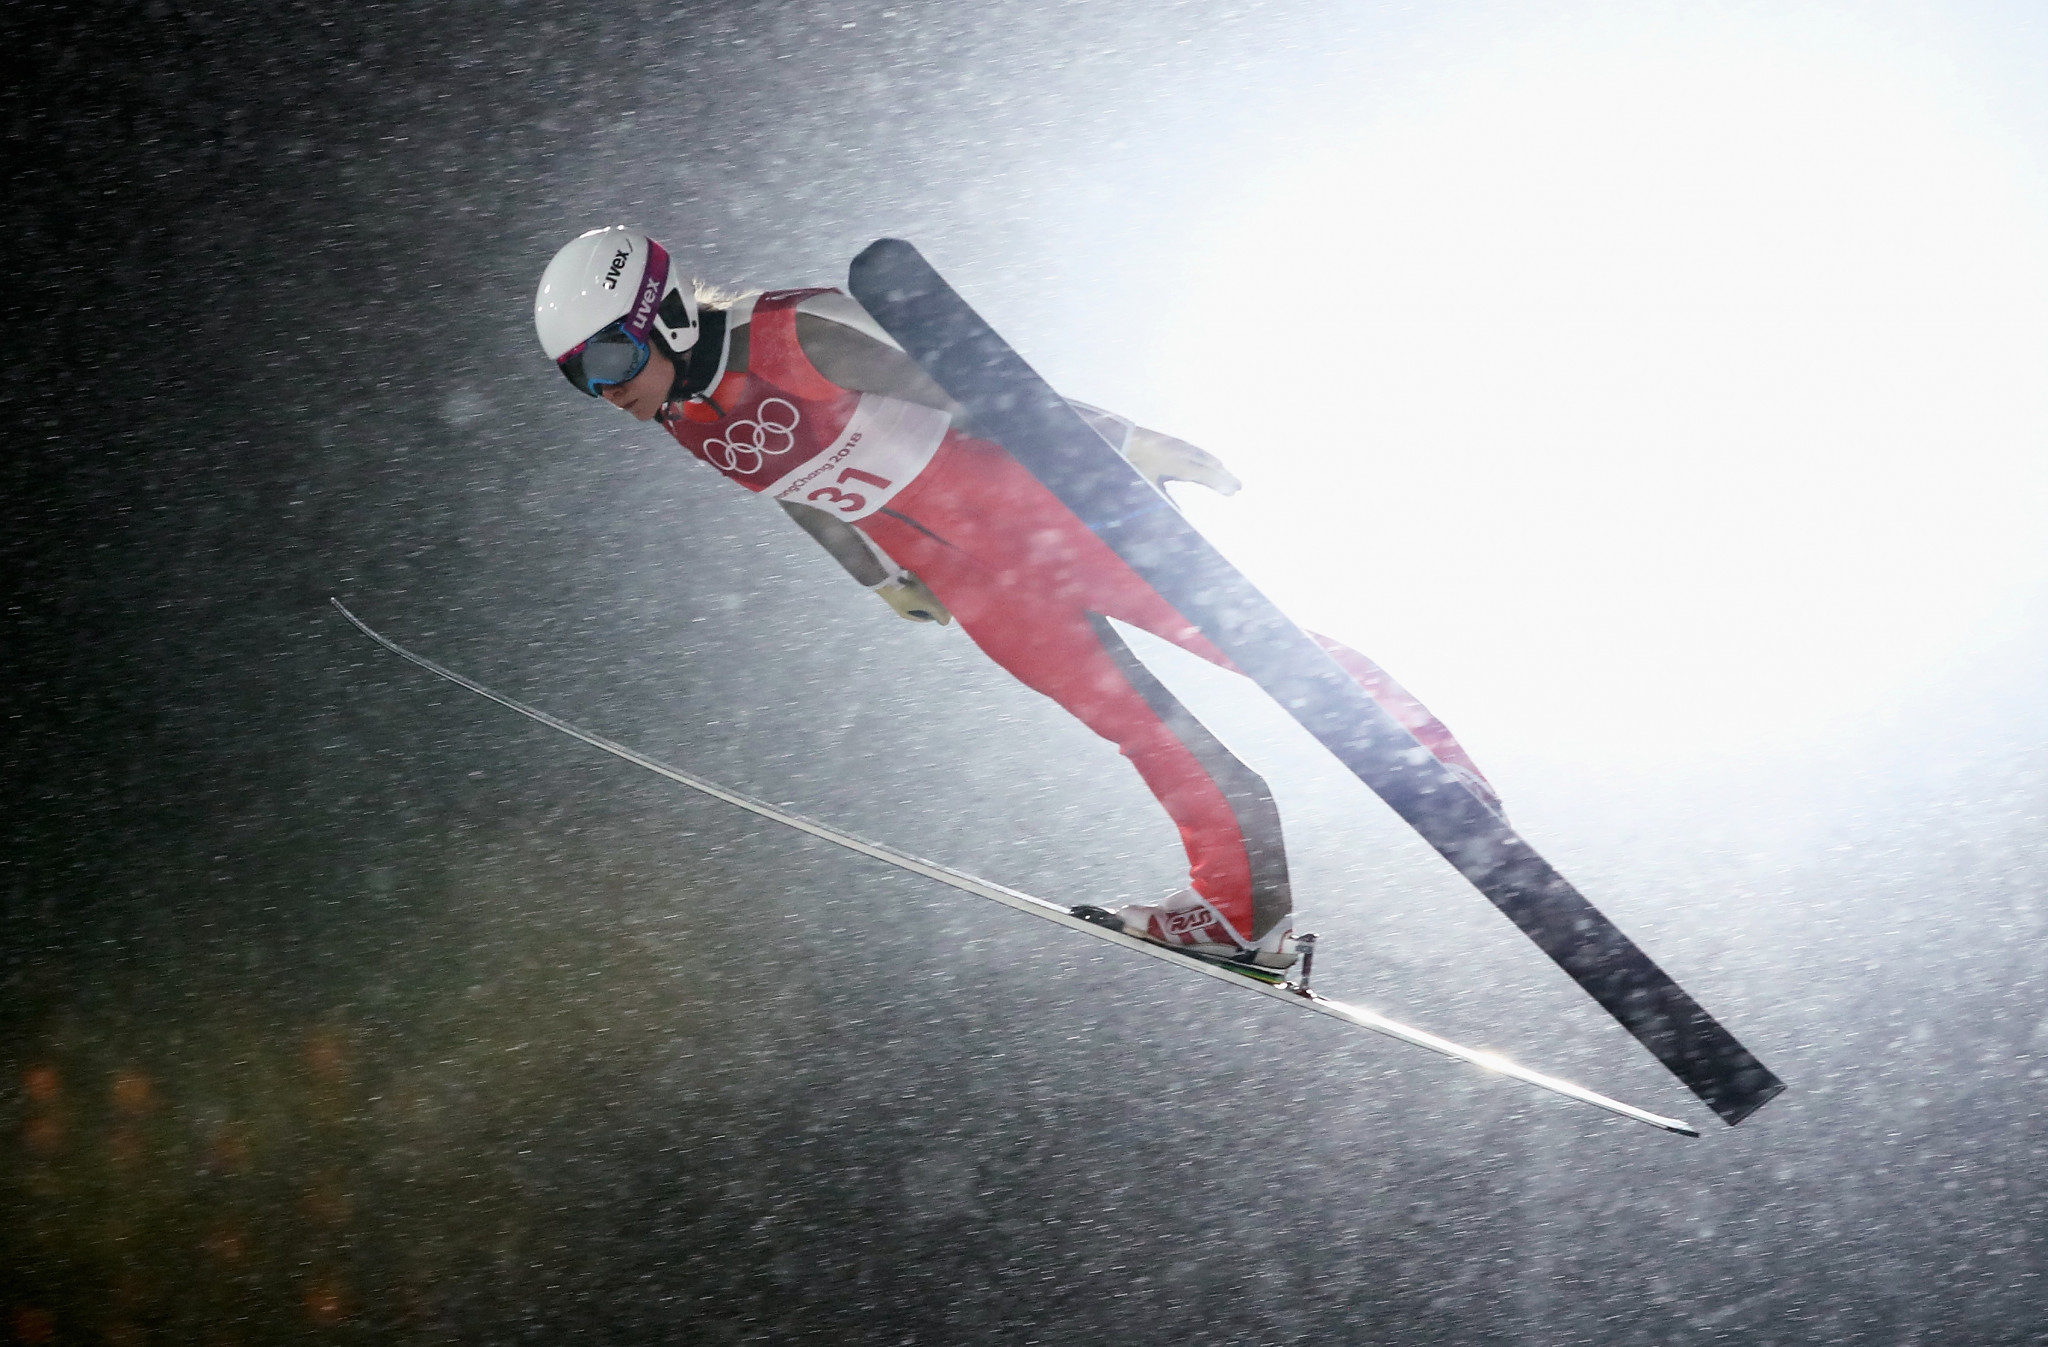 Russian ski jumper Avvakumova takes year out from competing